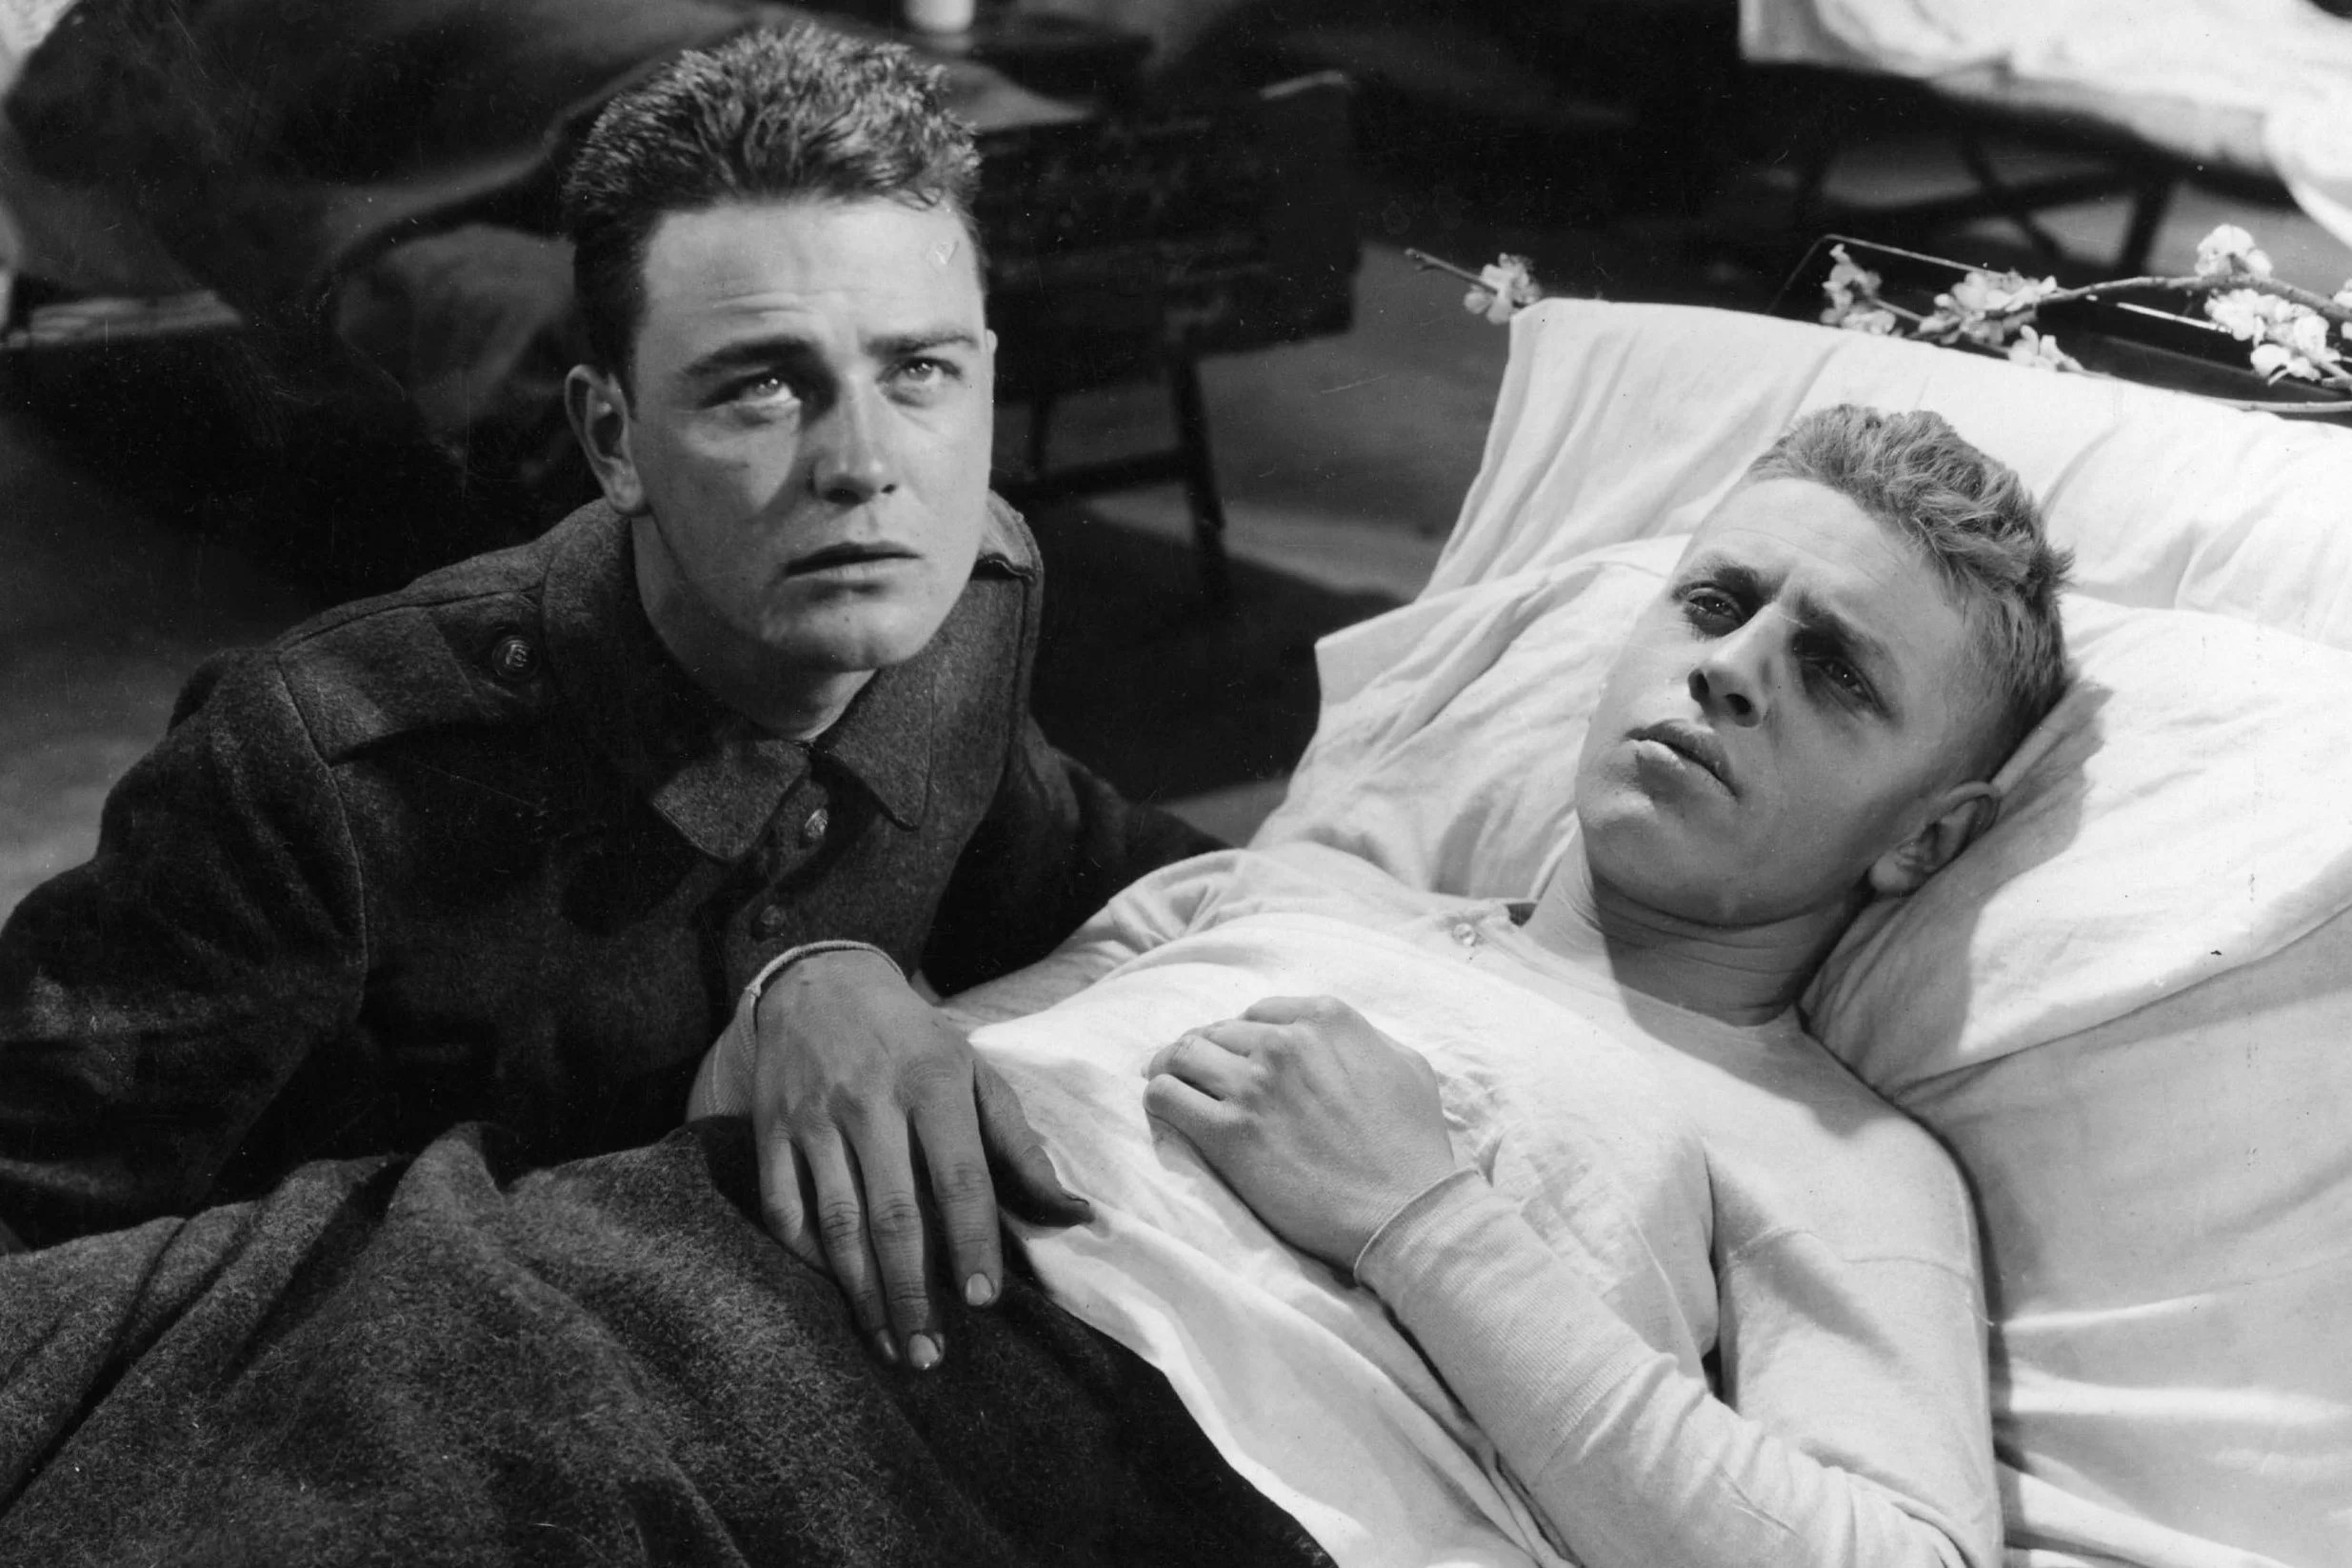 Lew Ayres and Ben Alexander in All Quiet On The Western Front (1930)